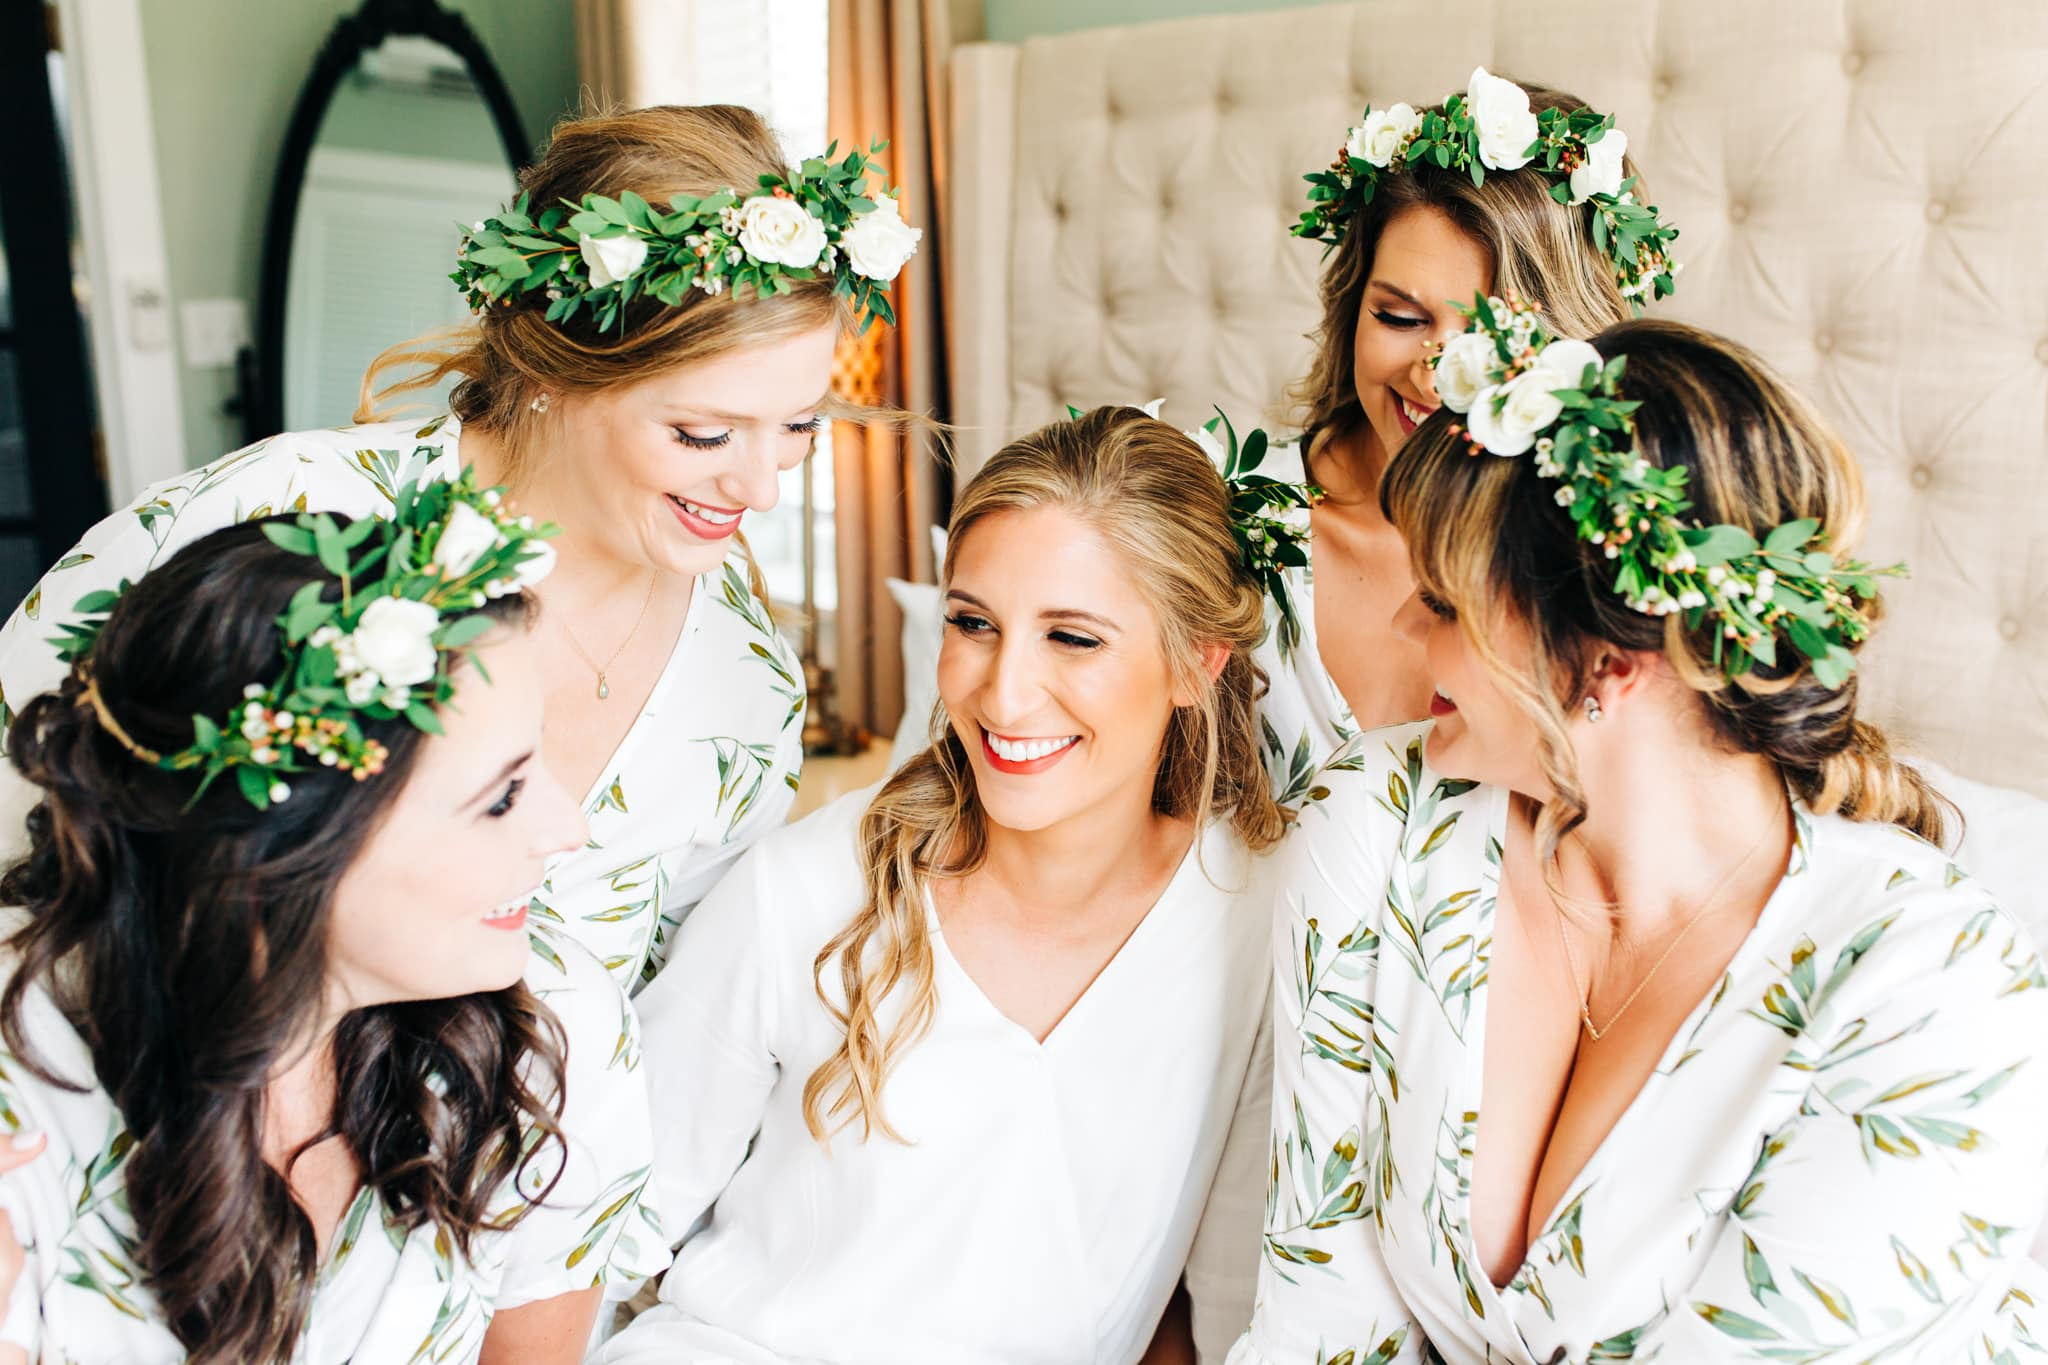 bride at Bella bay in laughing with bridesmaids in white and green flower crowns and bridesmaid robes